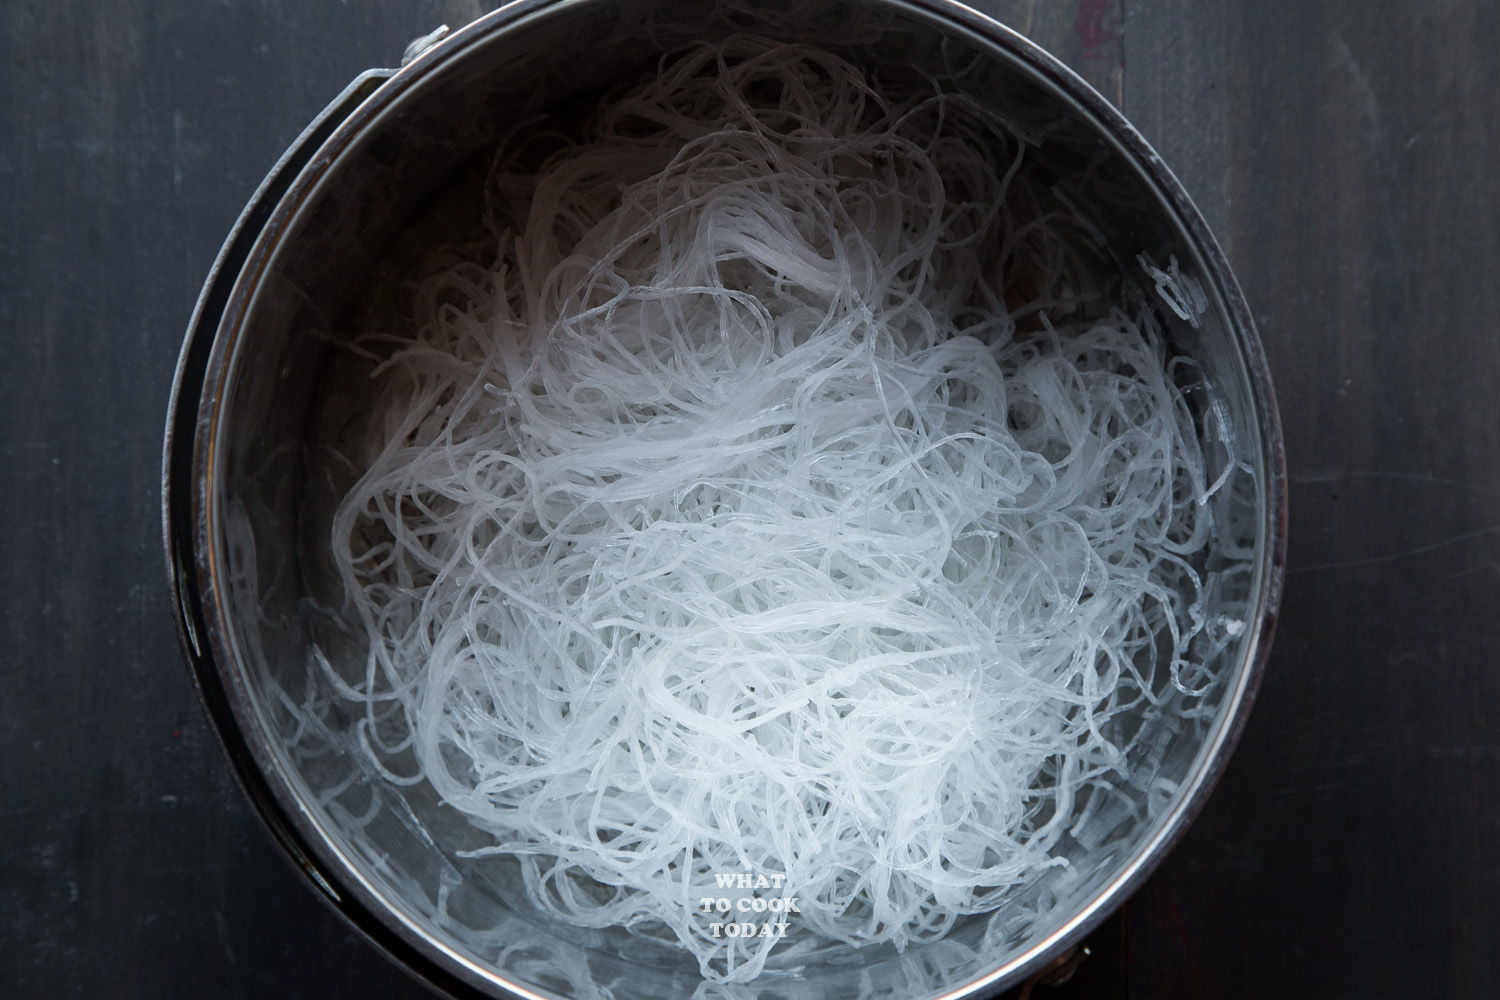 cellophane noodle / glass noodle / bean thread noodle after soaked